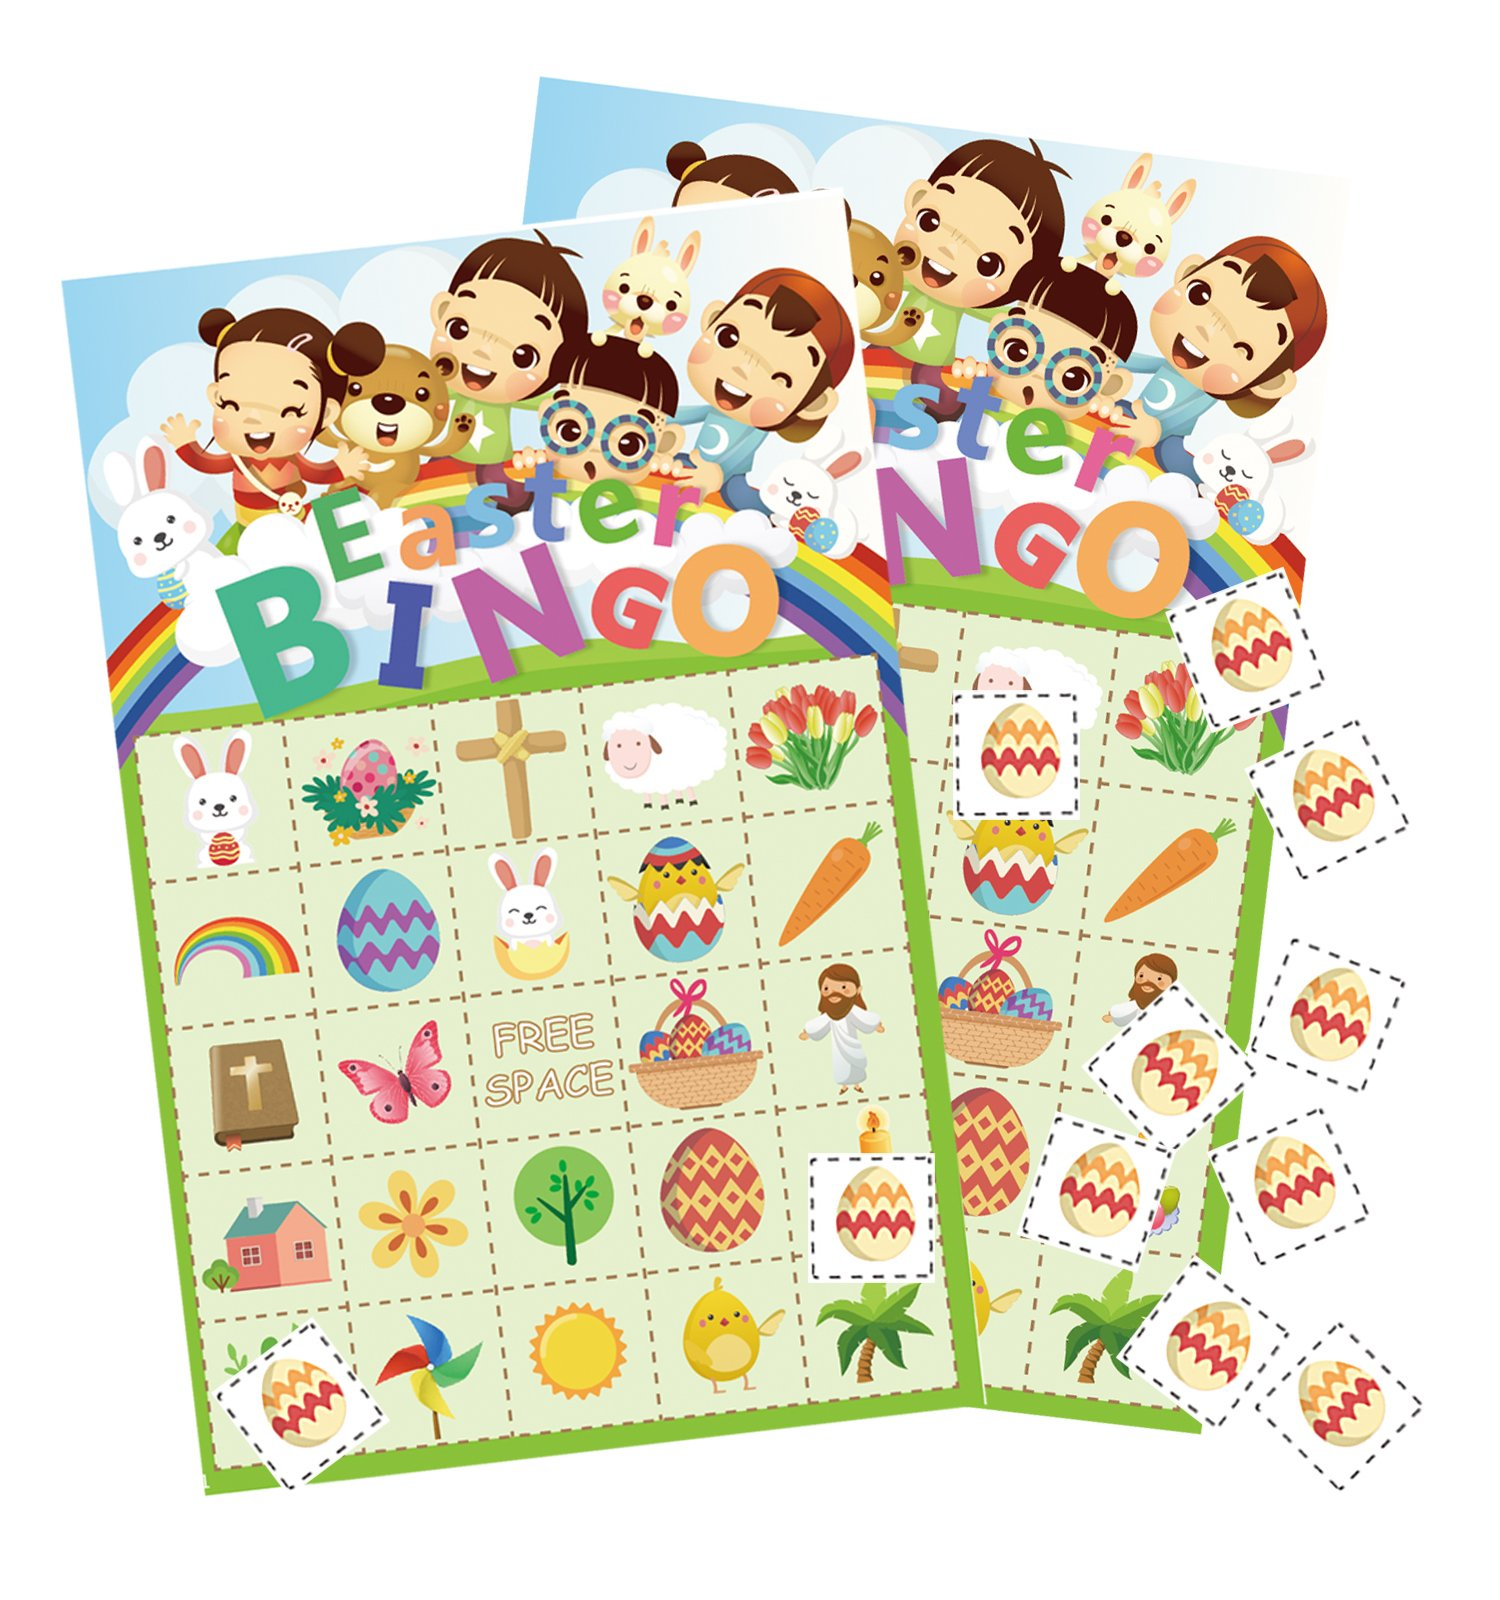 Easter Bingo Game for Kids - Party Cards Bunny Egg Hunt Activity - 24 Players